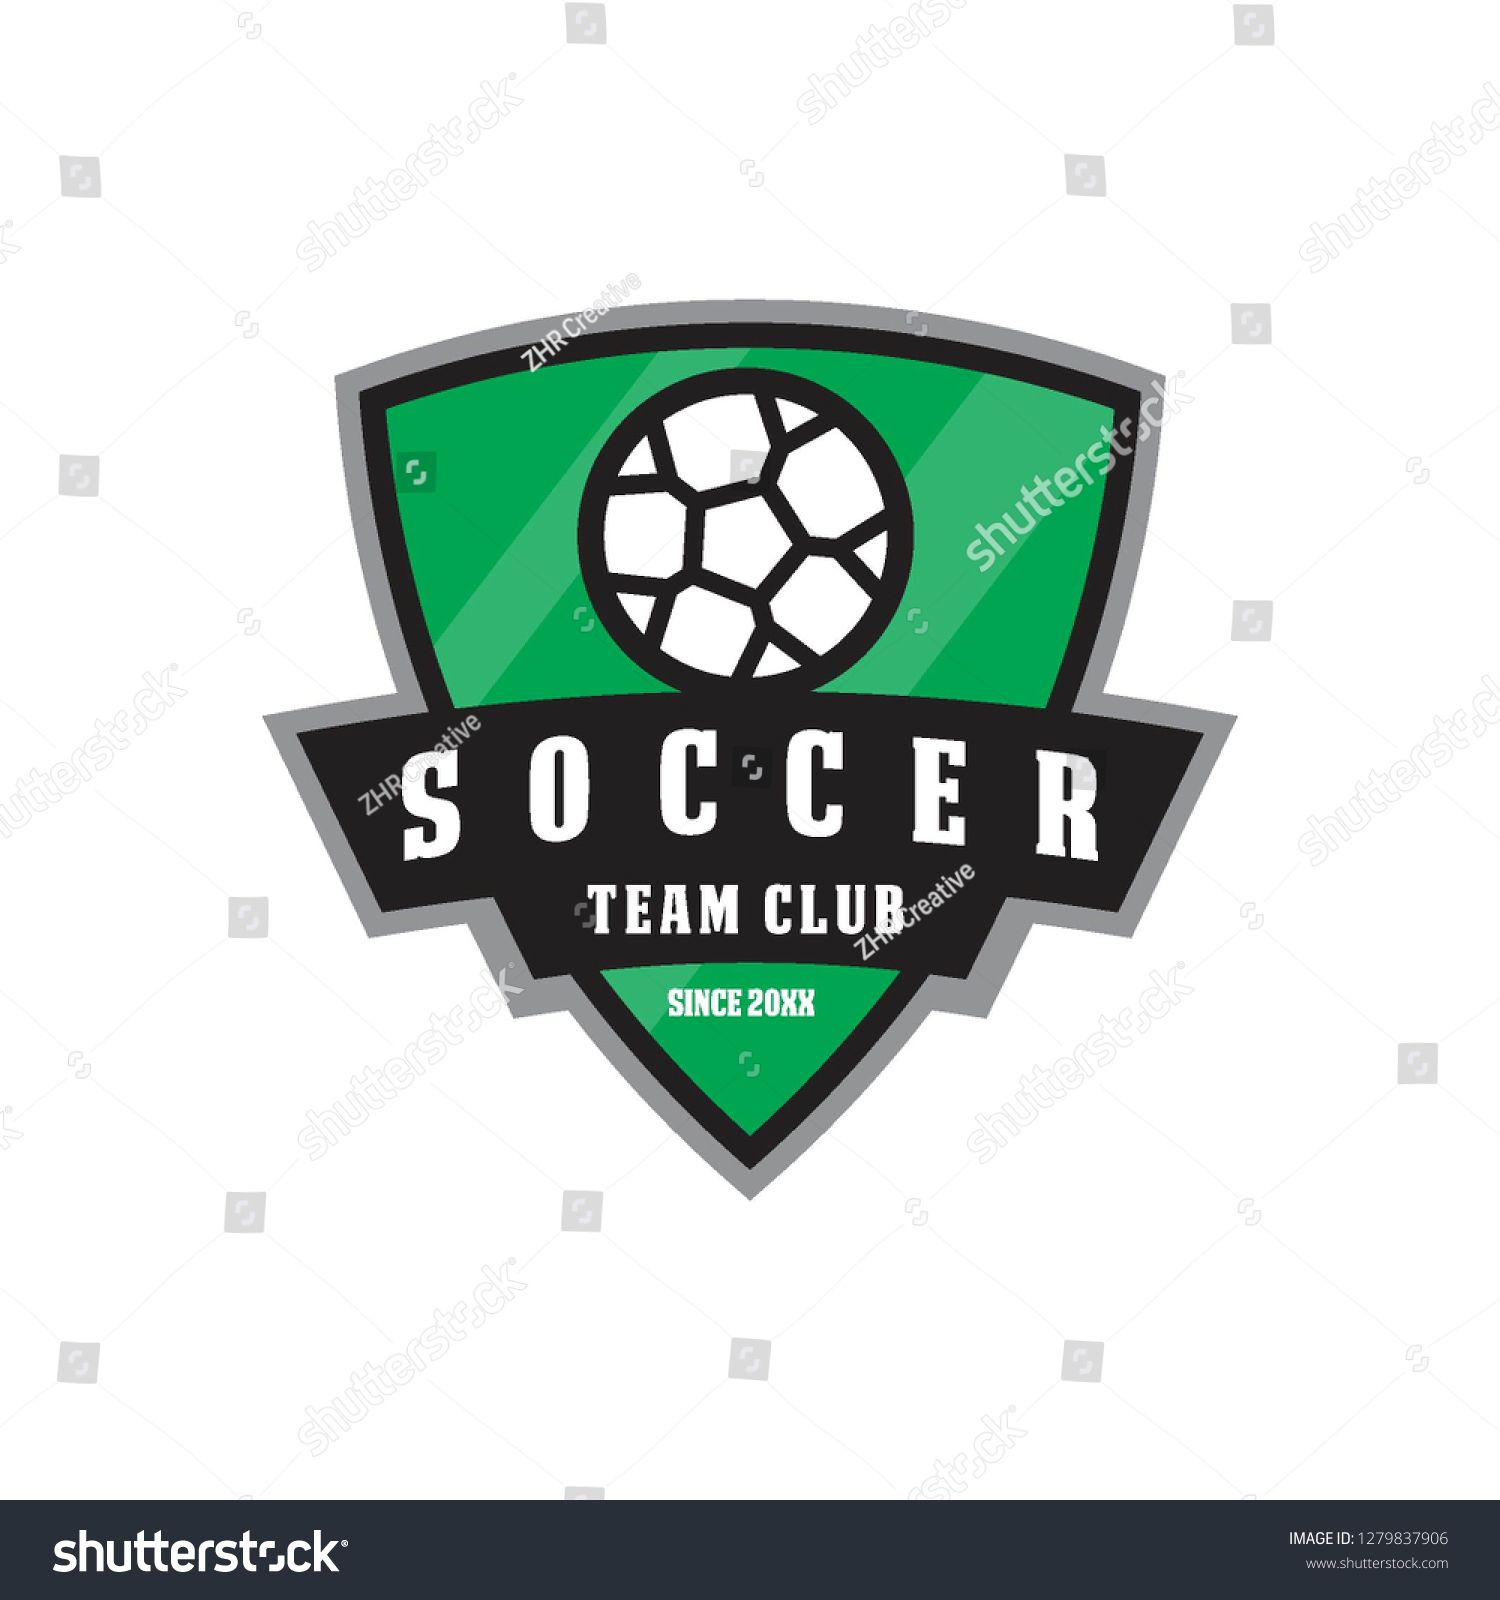 Football Soccer Team Club League Emblem Badge Competition In Shield Shape Logo Icon Vector Template In 2020 Soccer Team Football Soccer Soccer